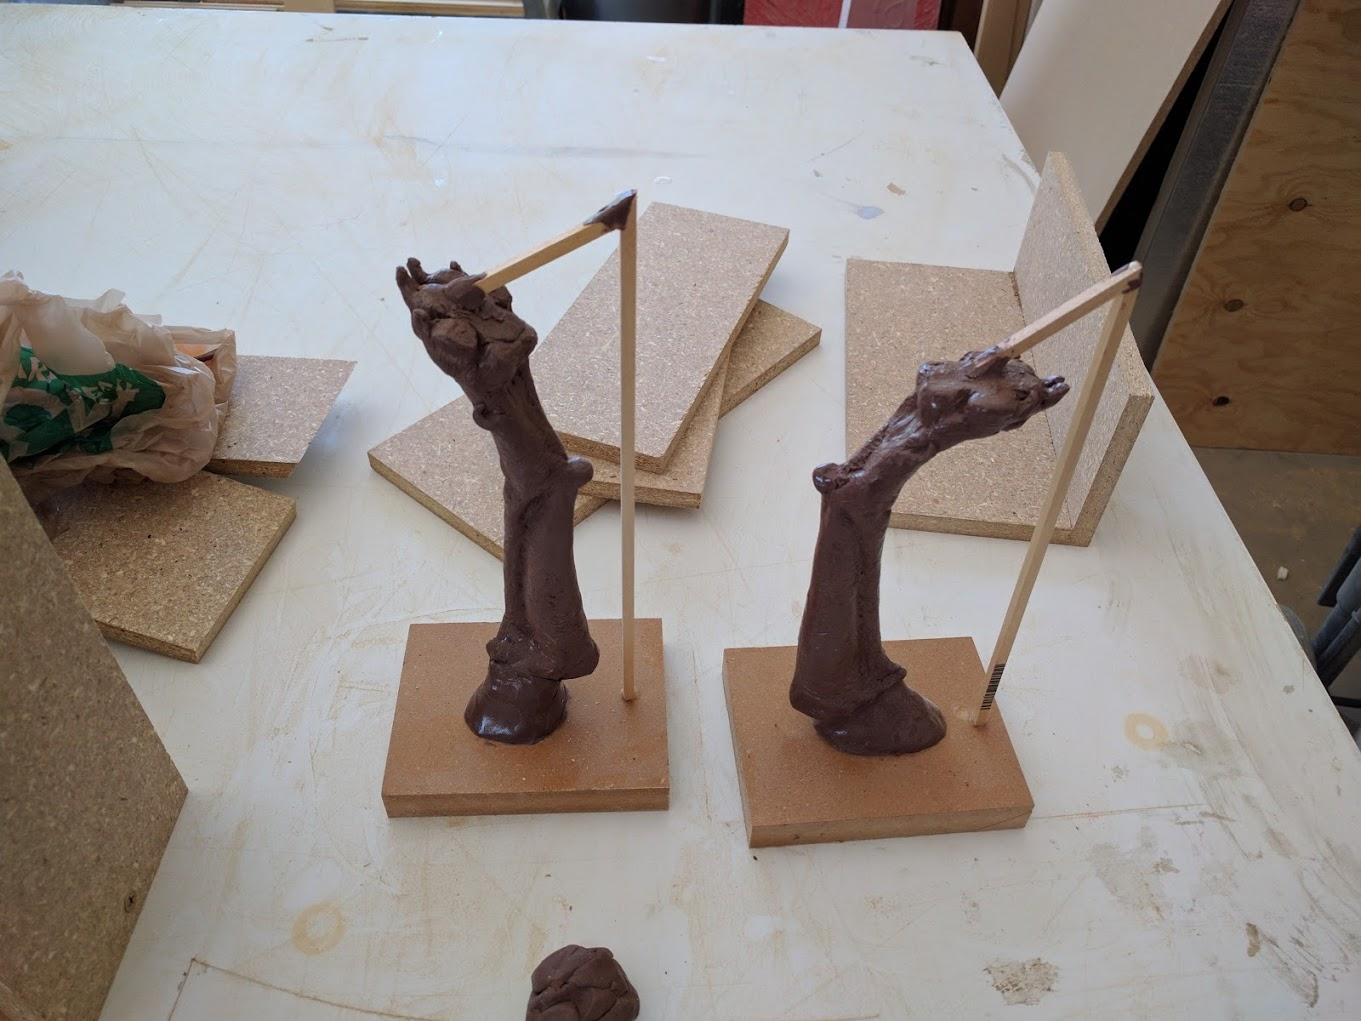 Front legs were cut. The wooden sticks will serve as exhaust channels when pouring the wax.